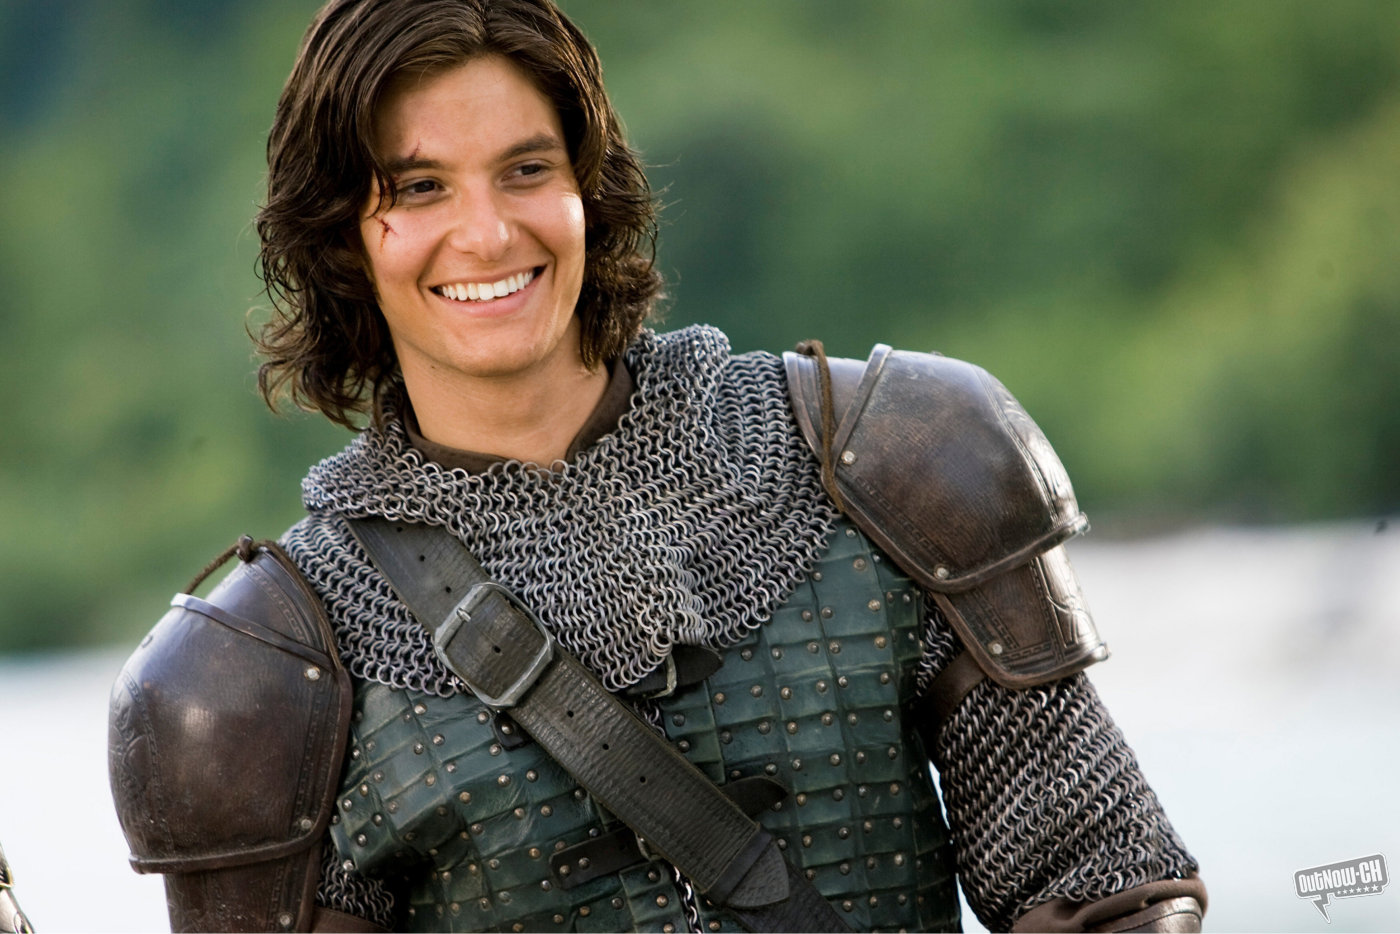 narnia prince caspian The chronicles of narnia films - part 2 : the chronicles of narnia: prince caspian (2008) d andrew adamson, 150 minutes film plot summary in the pre-credits sequence, the film opened with the birth of a son for corrupt king miraz (sergio castellitto) by lady prunaprismia.